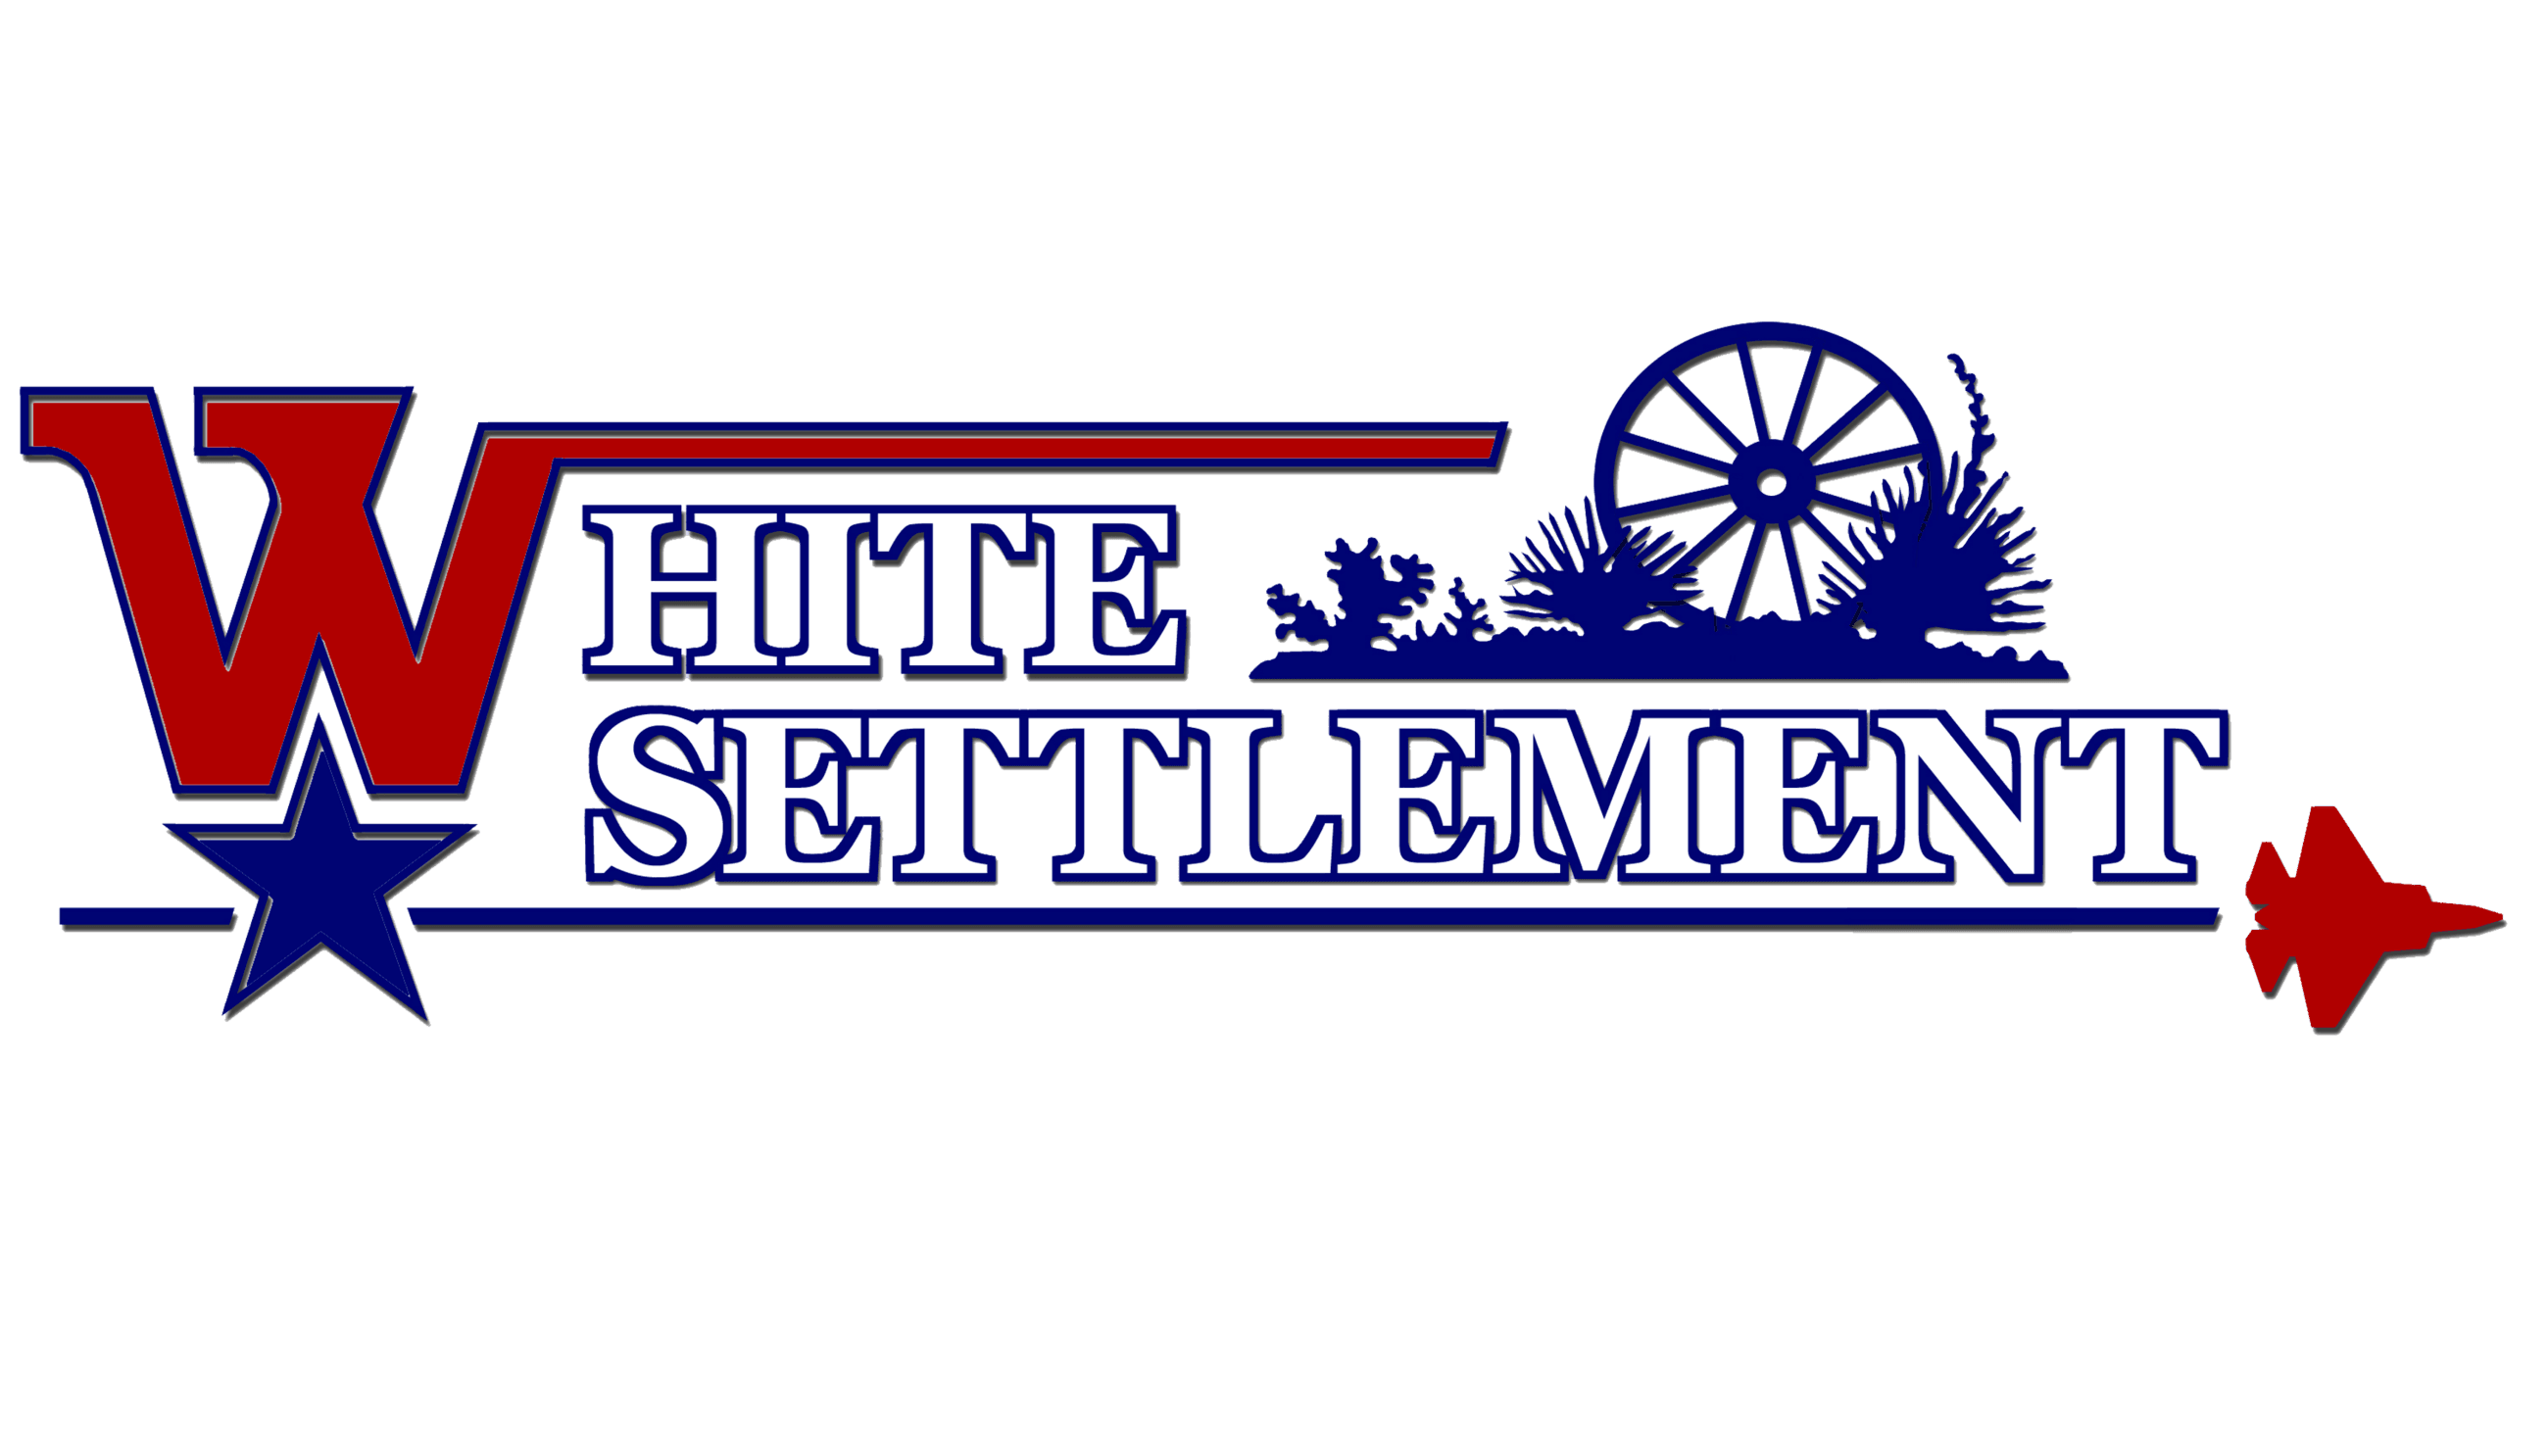 White Settlement Logo